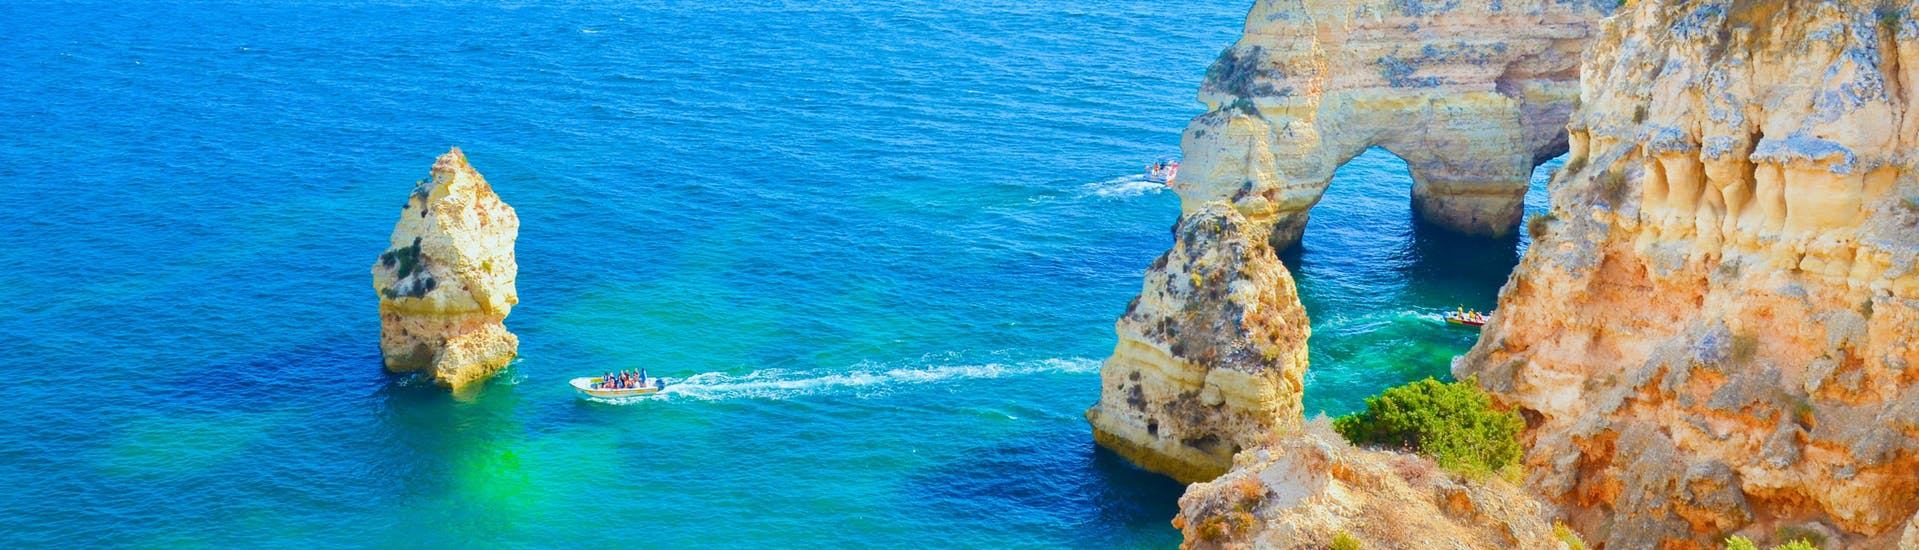 An image of the clear blue waters and the impressive rock formations of the Algarve coastline that visitors can enjoy on a boat trip from Lagos.